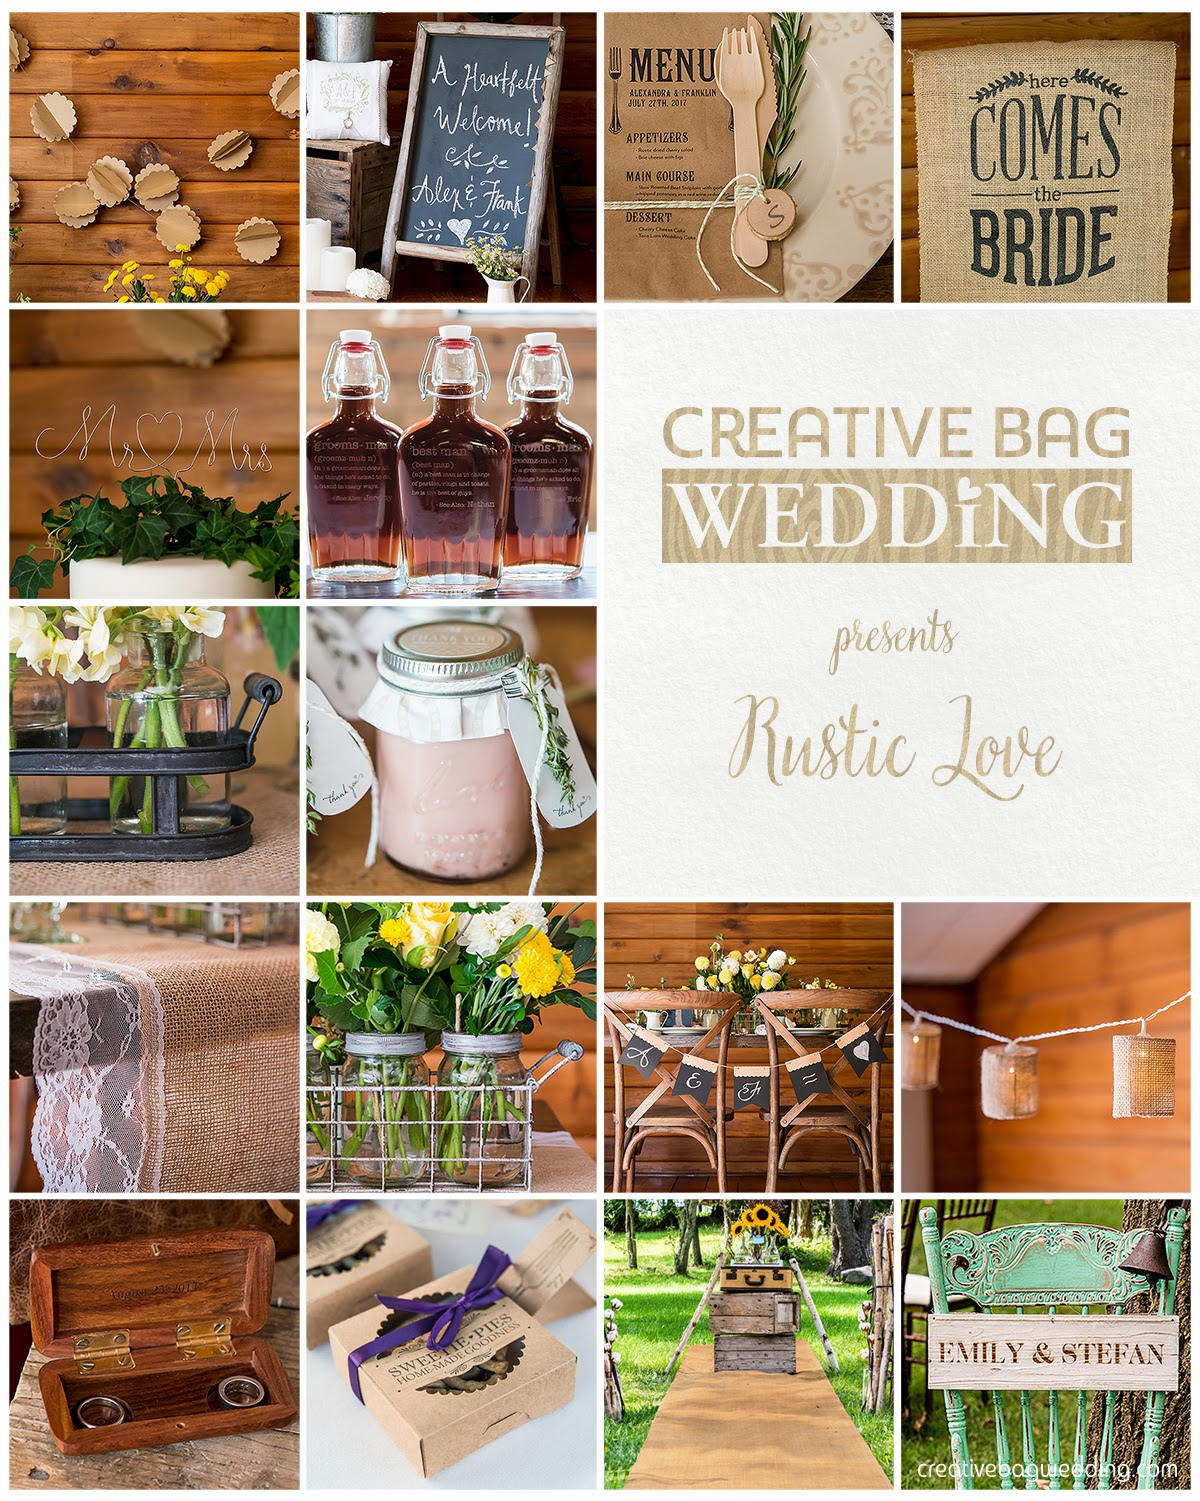 Rustic Love mood board | Creative Bag Wedding